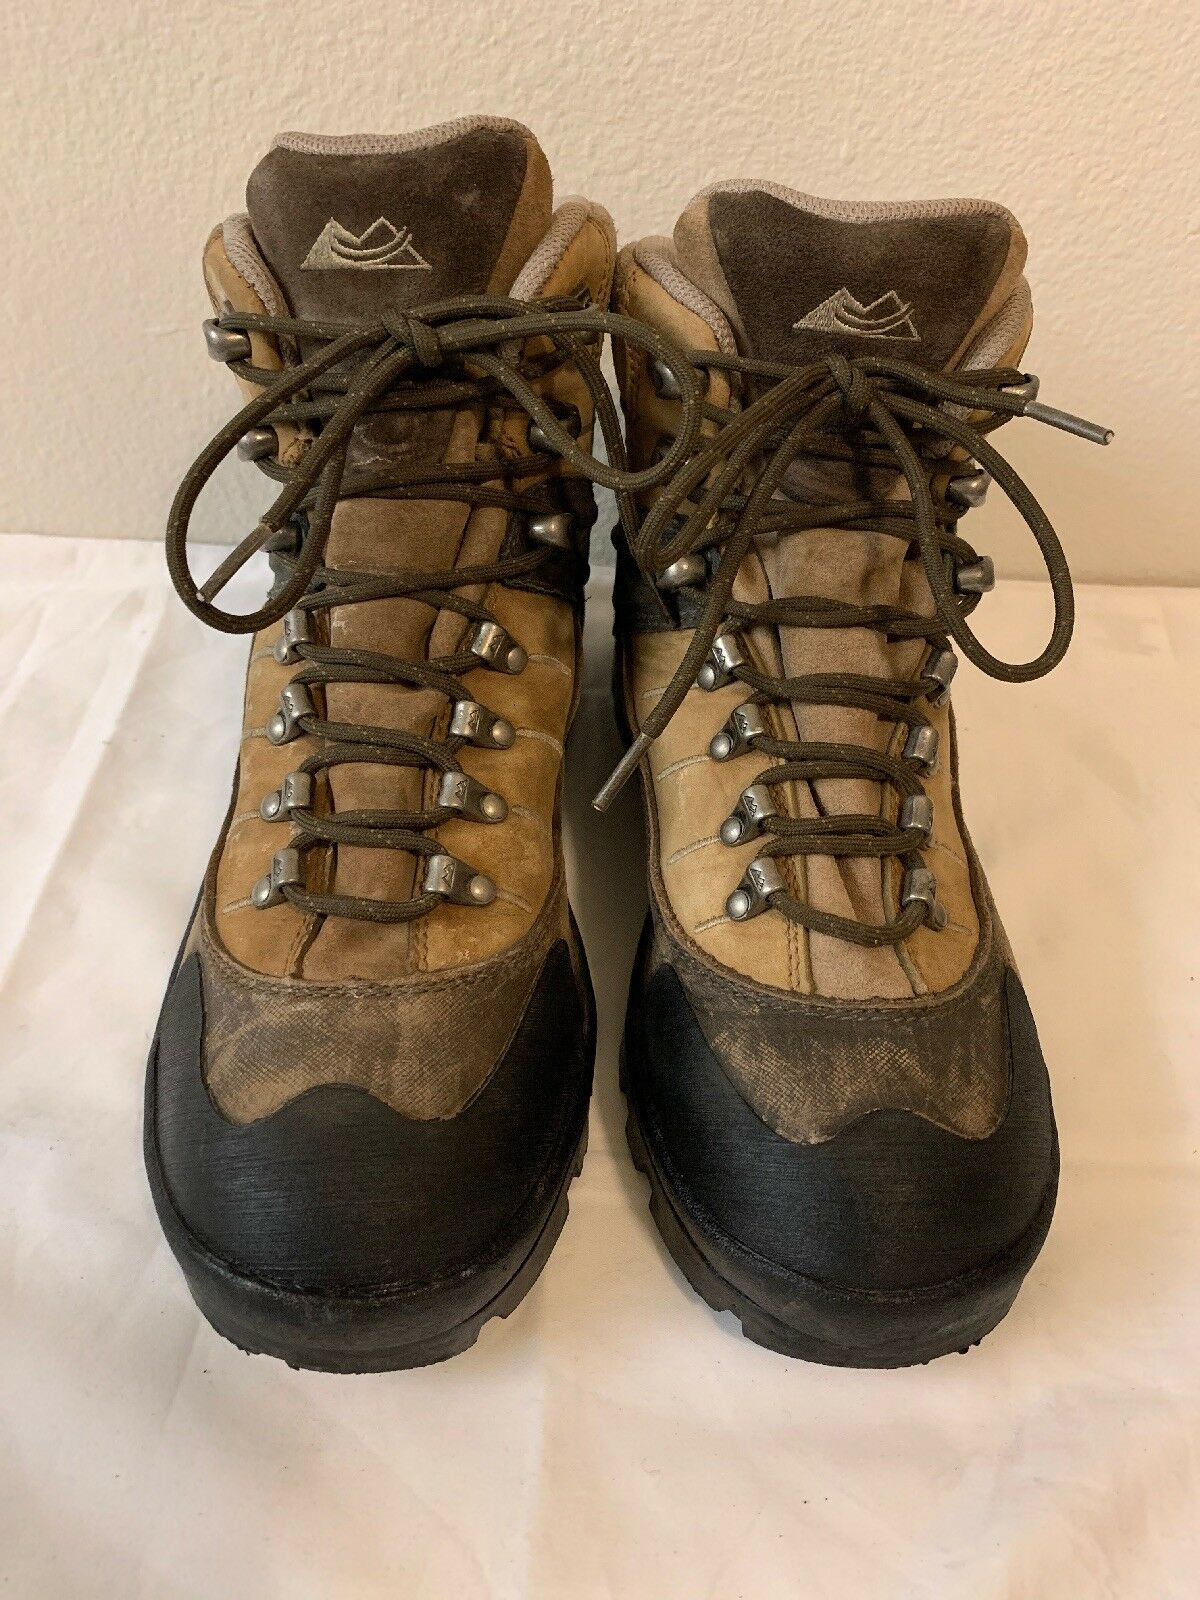 MONTRAIL GORE-TEX Waterproof leather HIKING Boots Women's 9.5